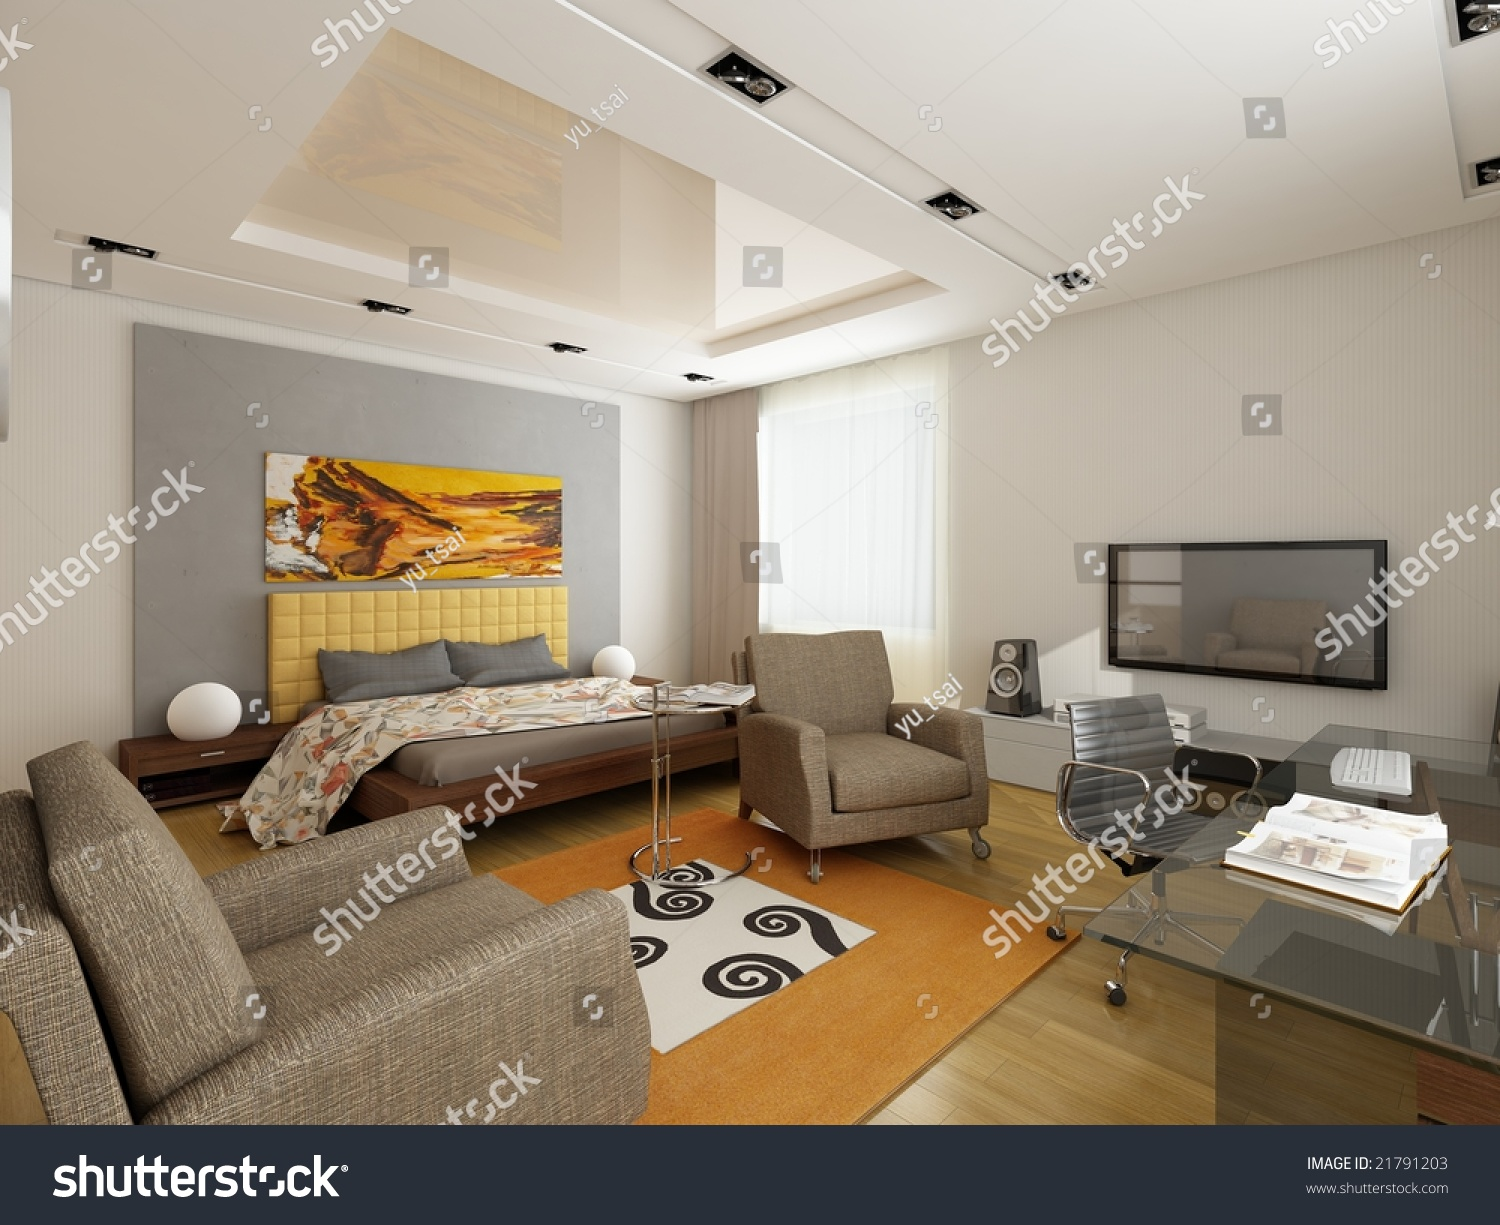 Modern interior design privat apartment 3d stock photo for Official interior design